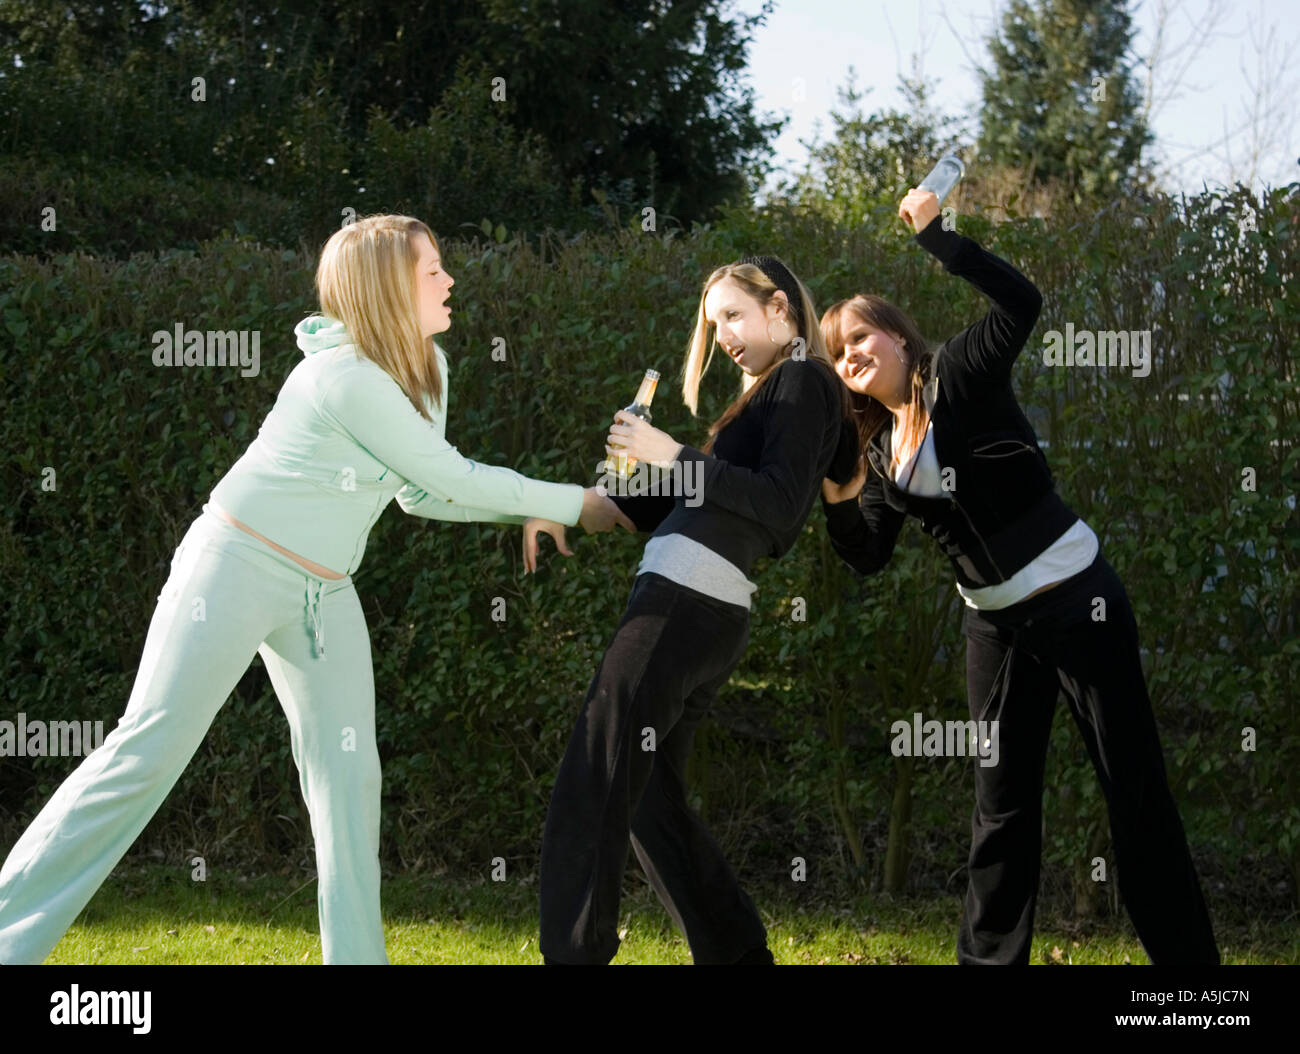 girl being bullied - Stock Image